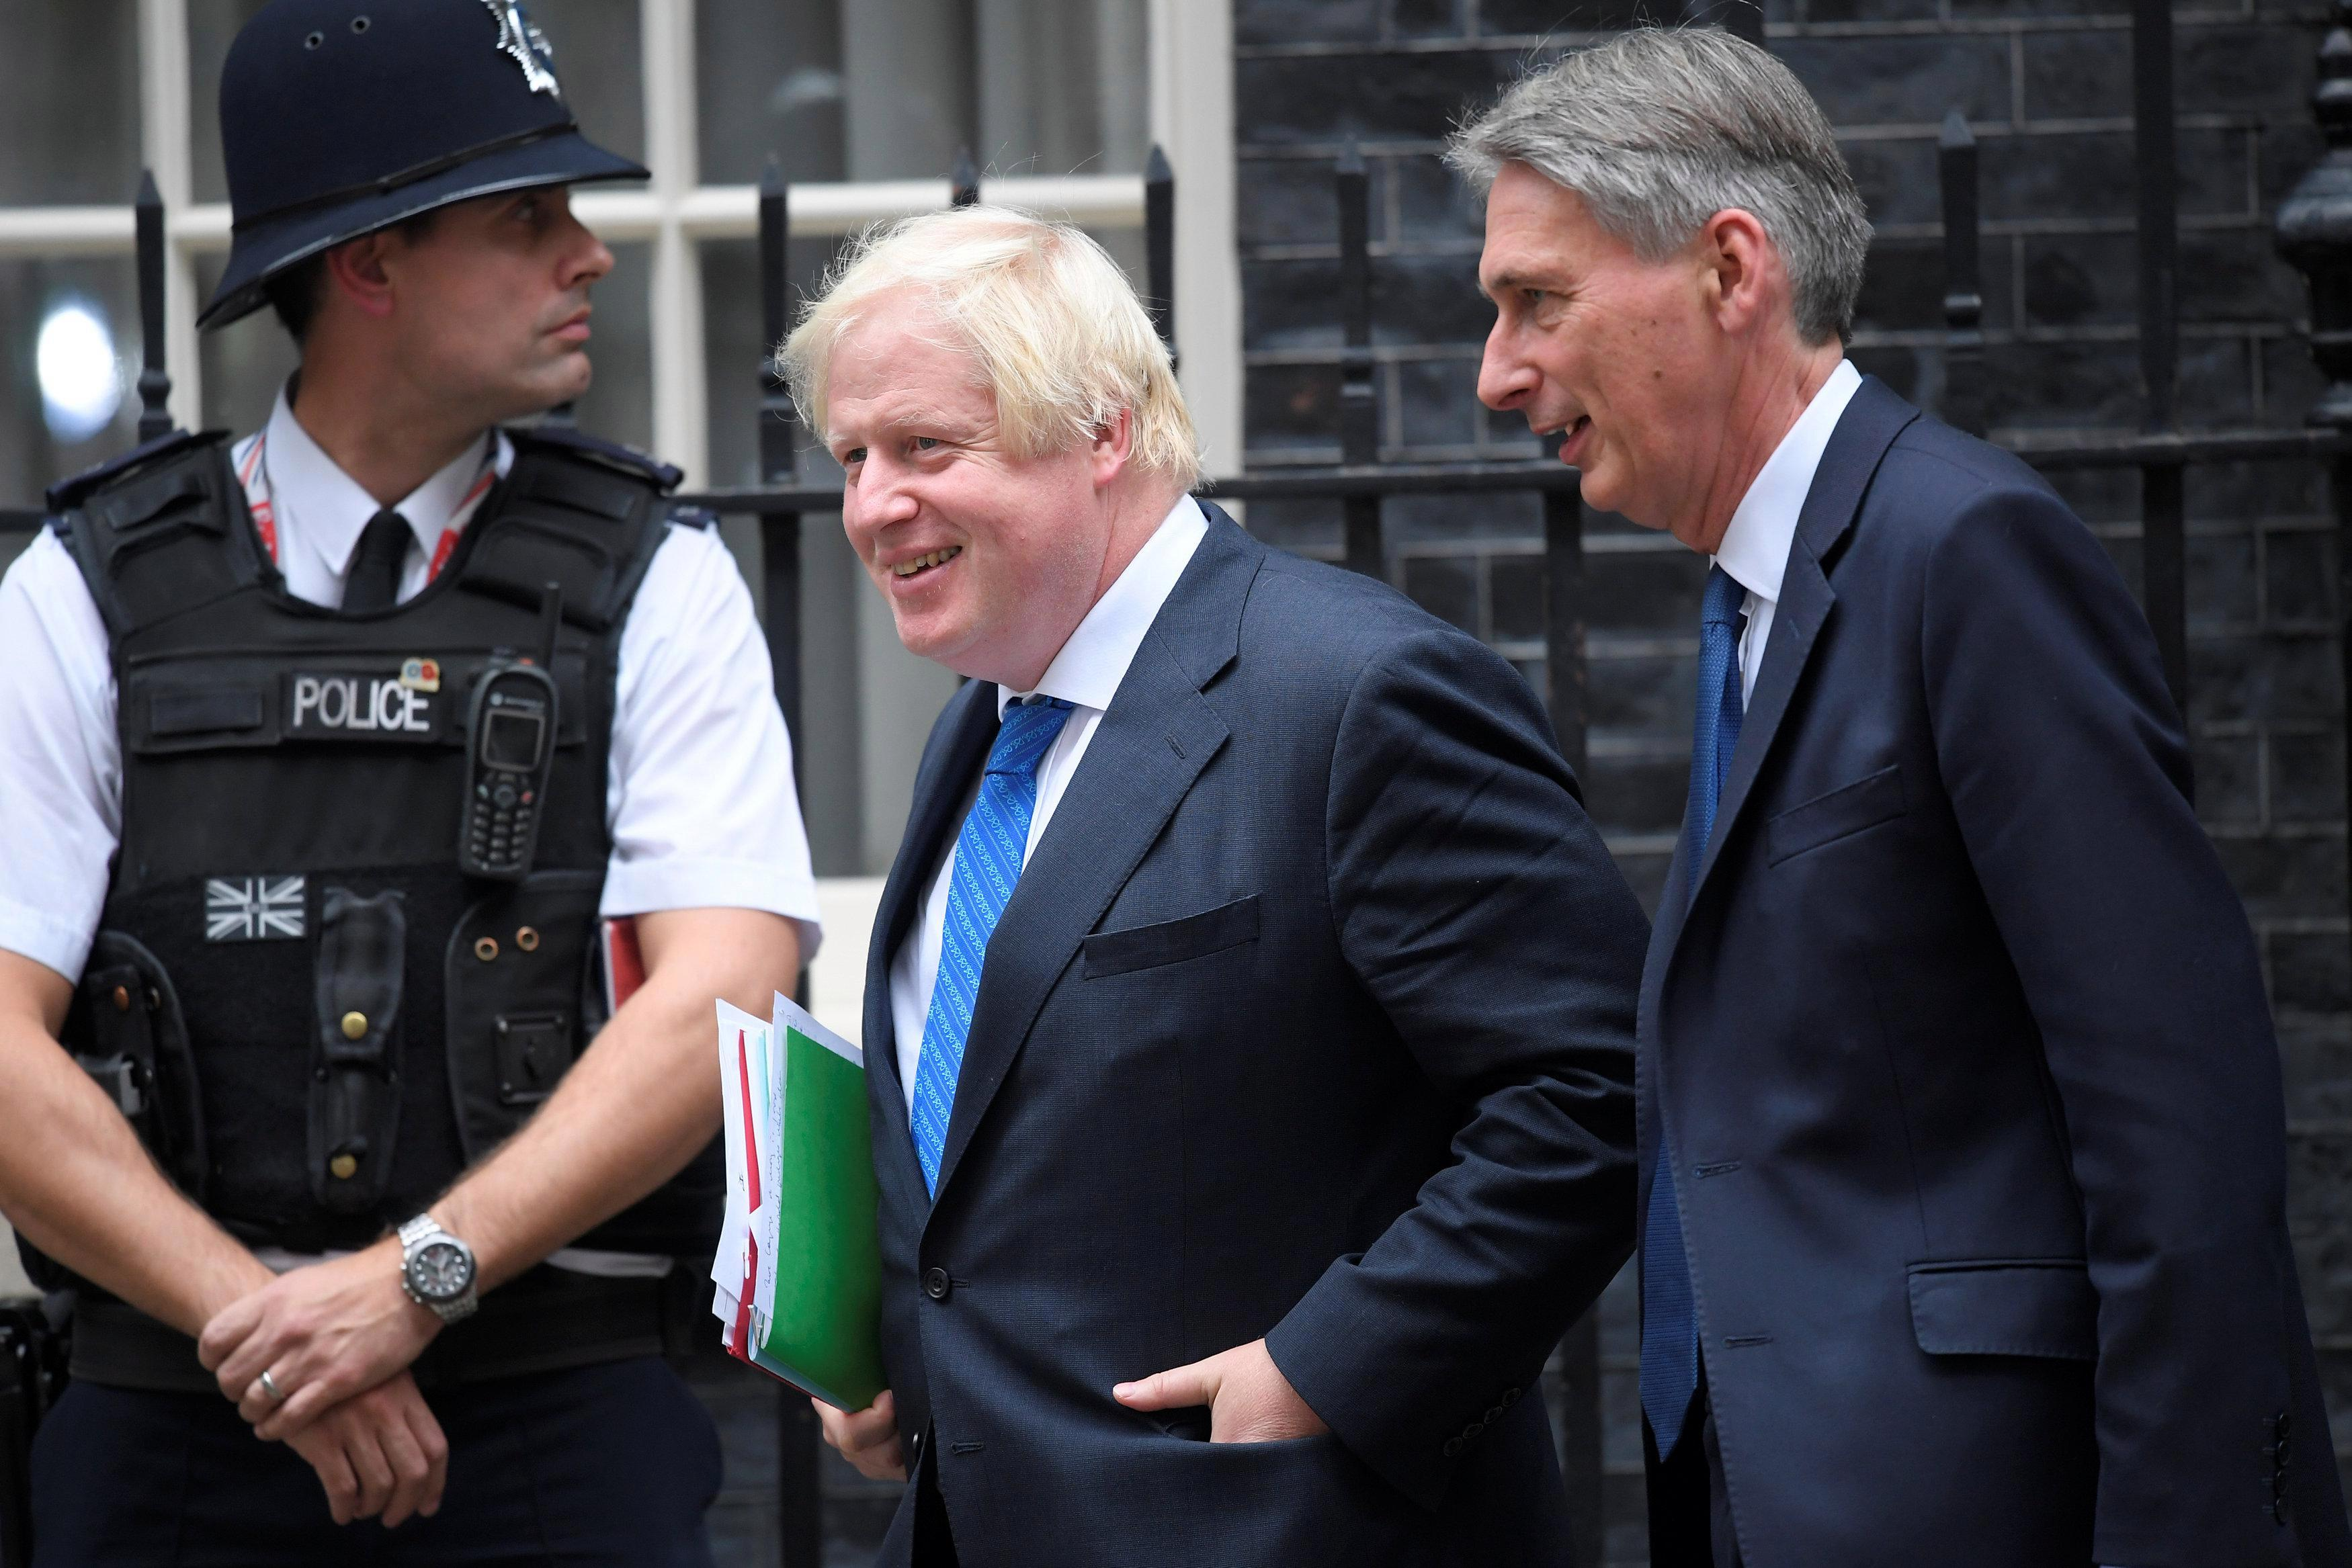 Don't be fooled by the smiles as Boris Johnson and arch-enemy Philip Hammond put on a show of 'false unity'